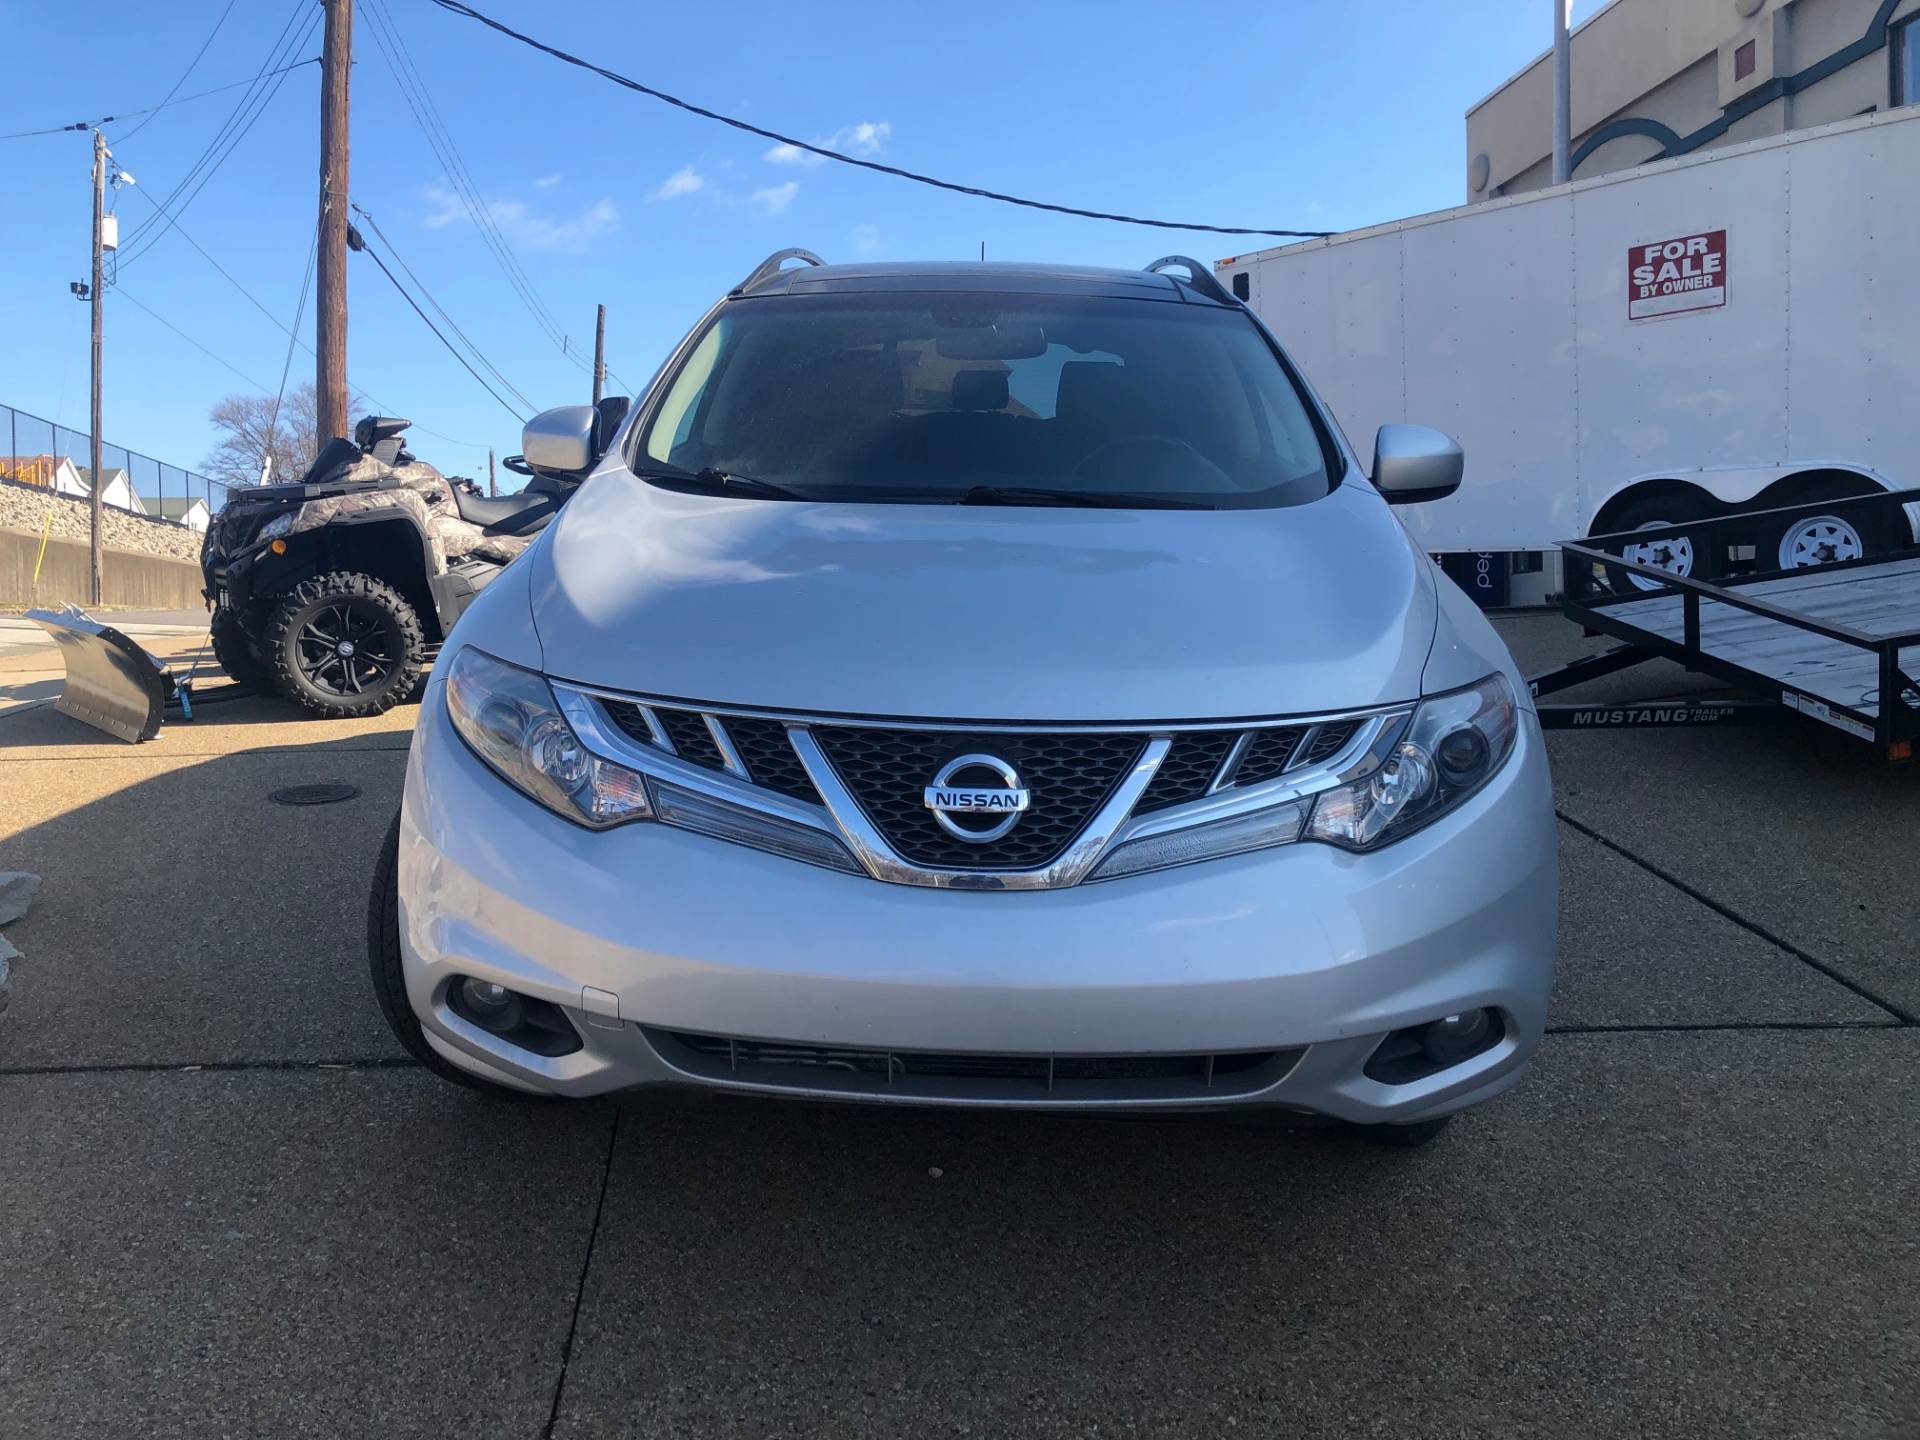 2012 Nissan Murano SL AWD in Tarentum, Pennsylvania - Photo 8